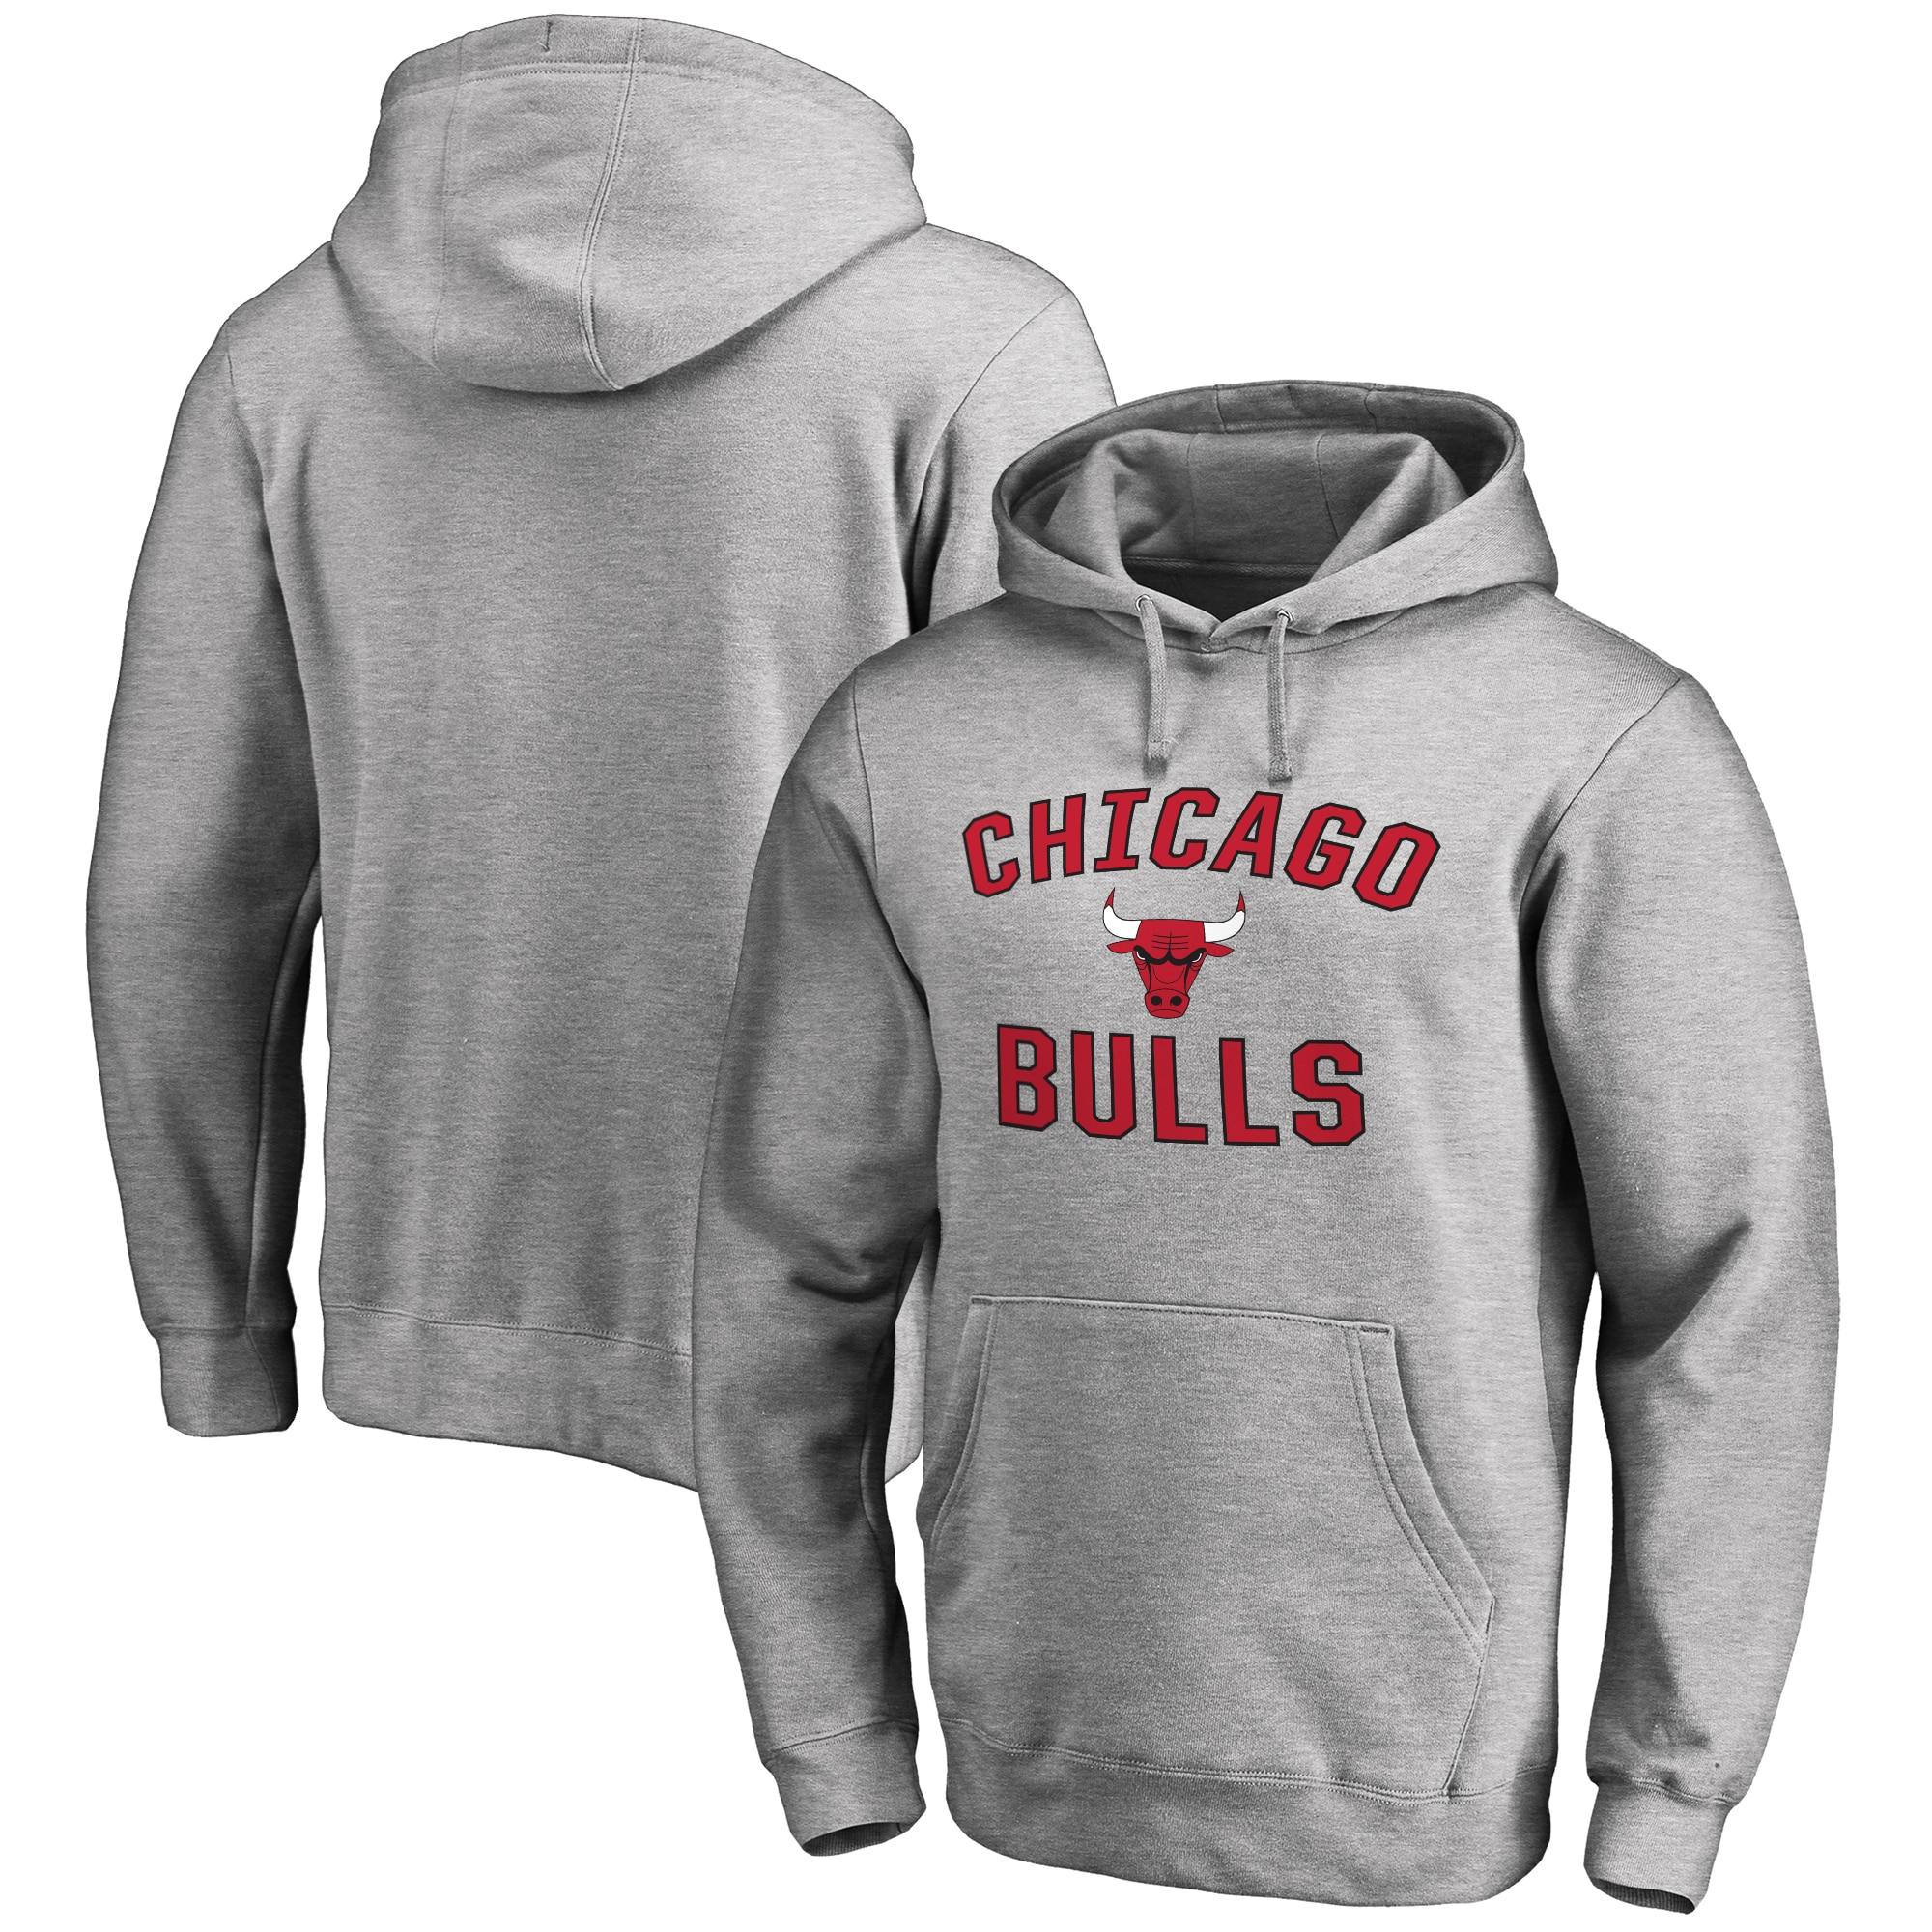 Chicago Bulls Victory Arch Pullover Hoodie - Ash